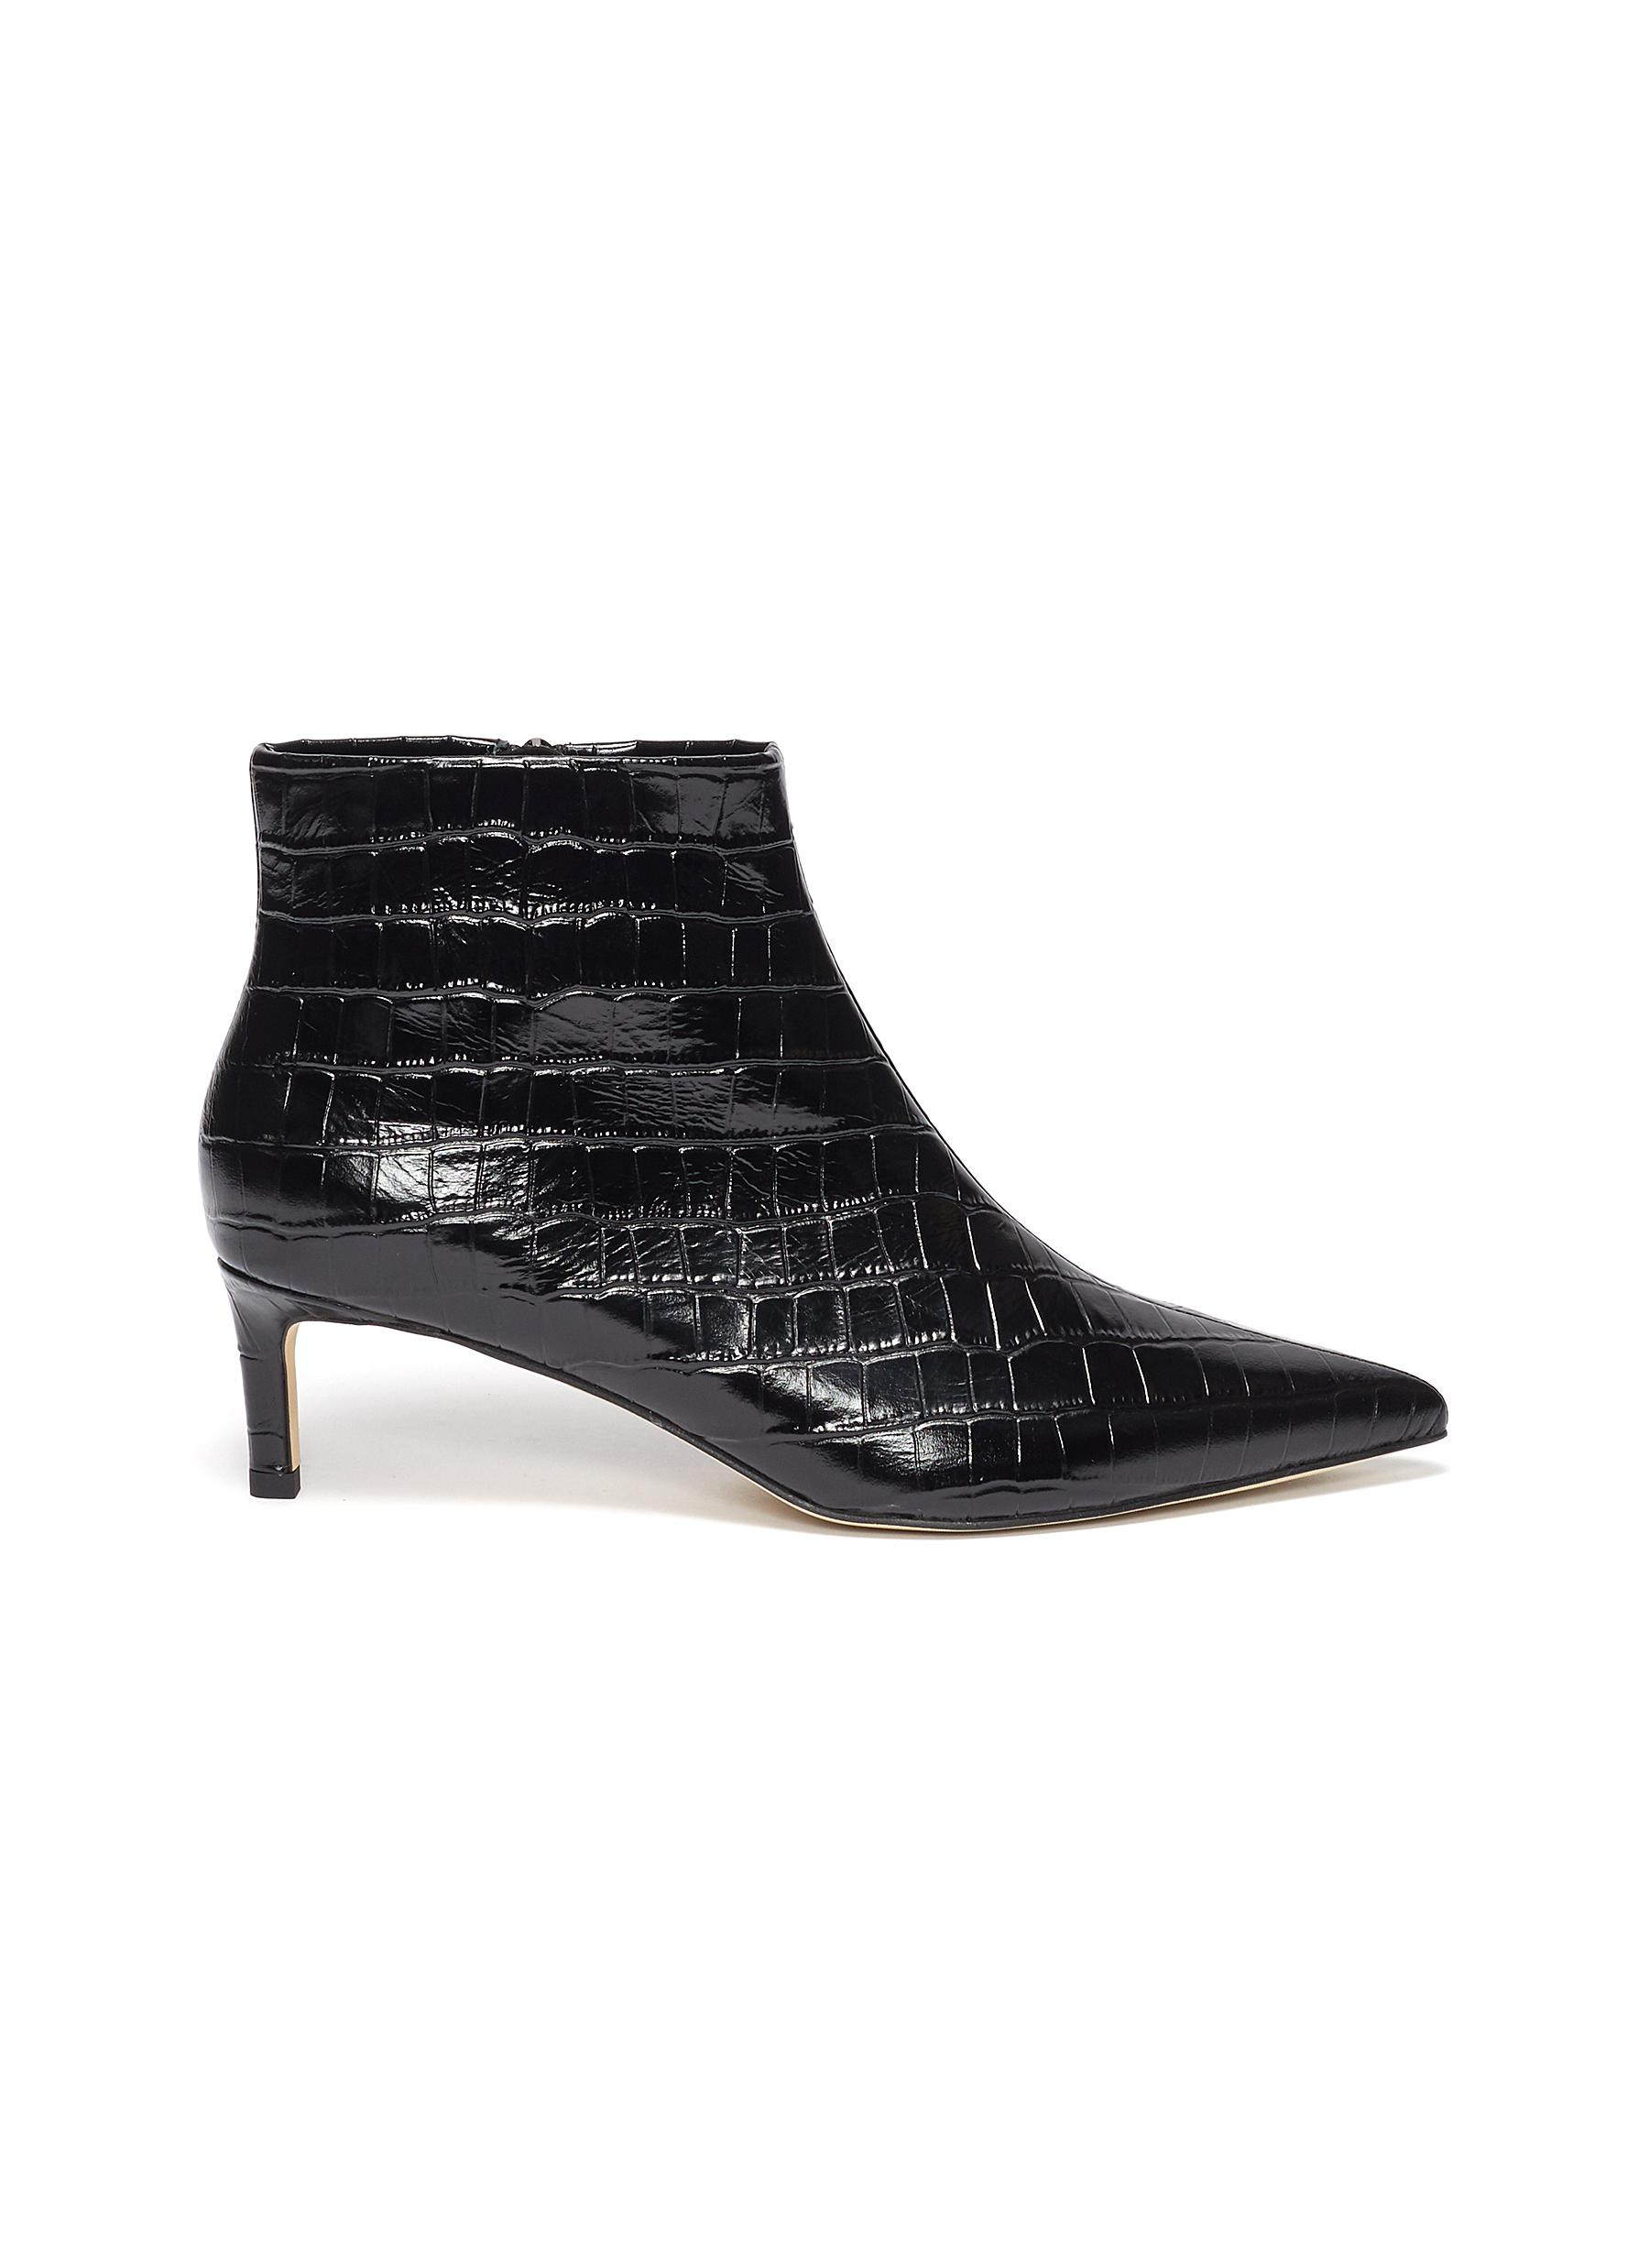 Bethany croc embossed leather ankle boots by Pedder Red